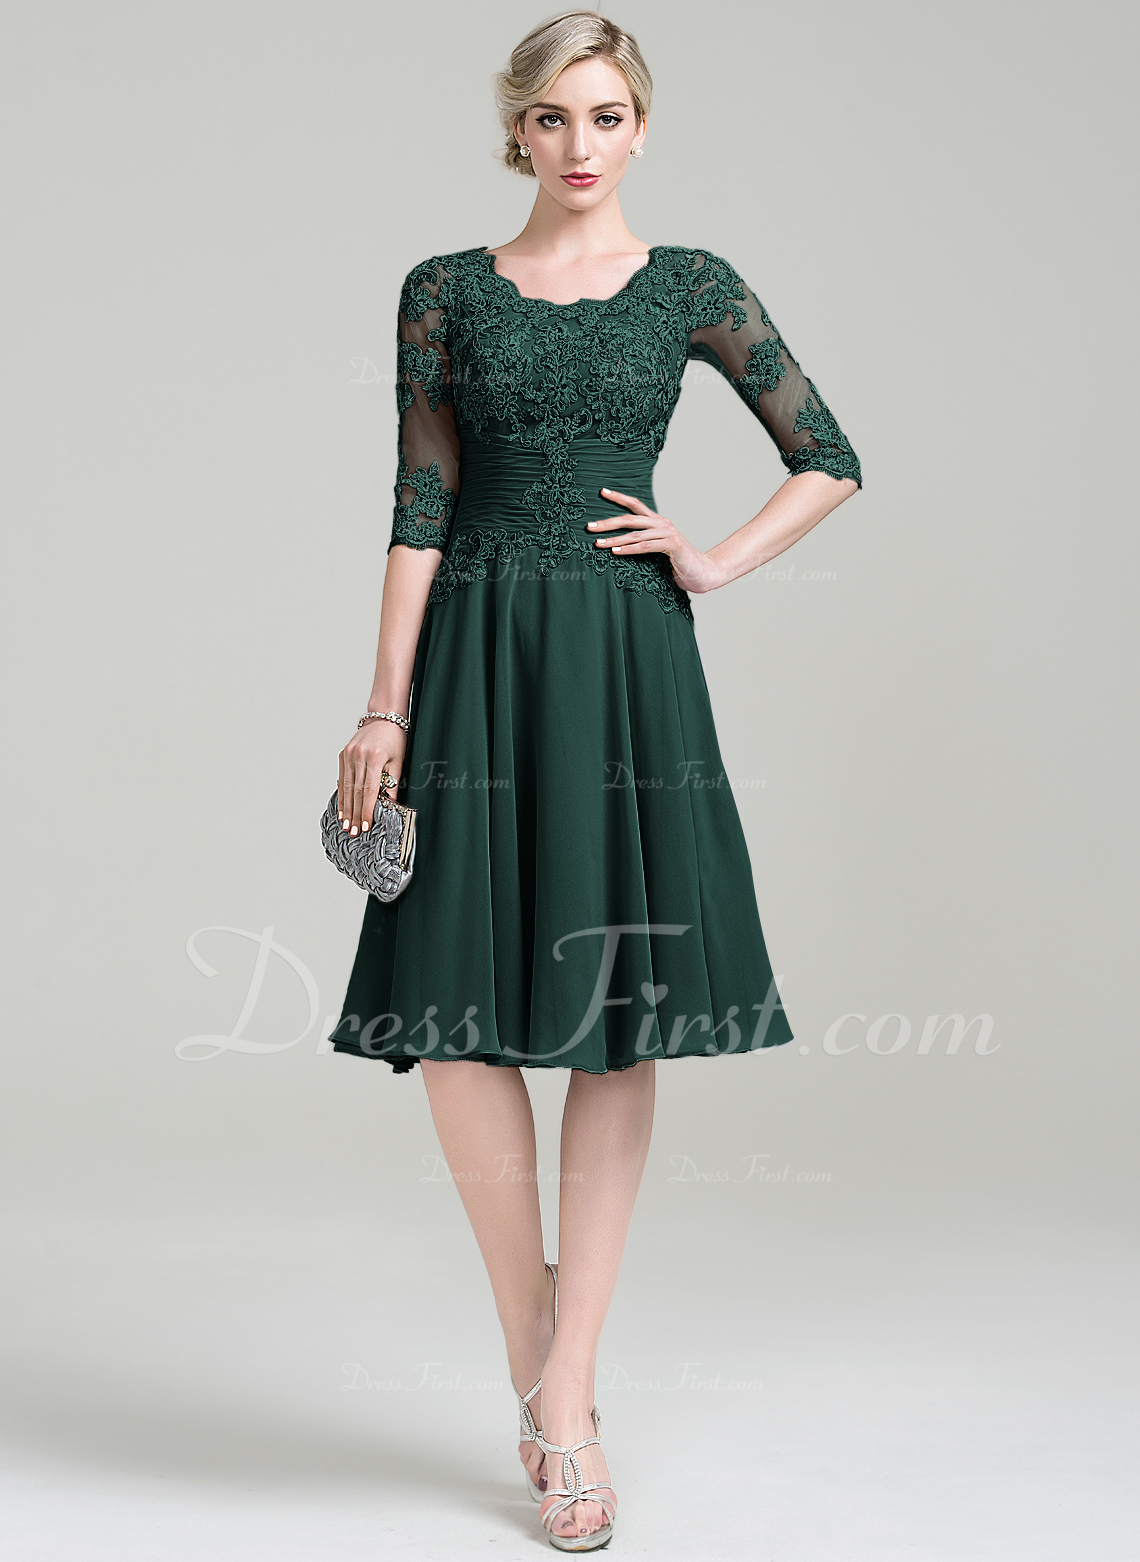 995845d2e7d5 A-Line Princess Scoop Neck Knee-Length Chiffon Mother of the Bride Dress  With Ruffle Appliques Lace  85301